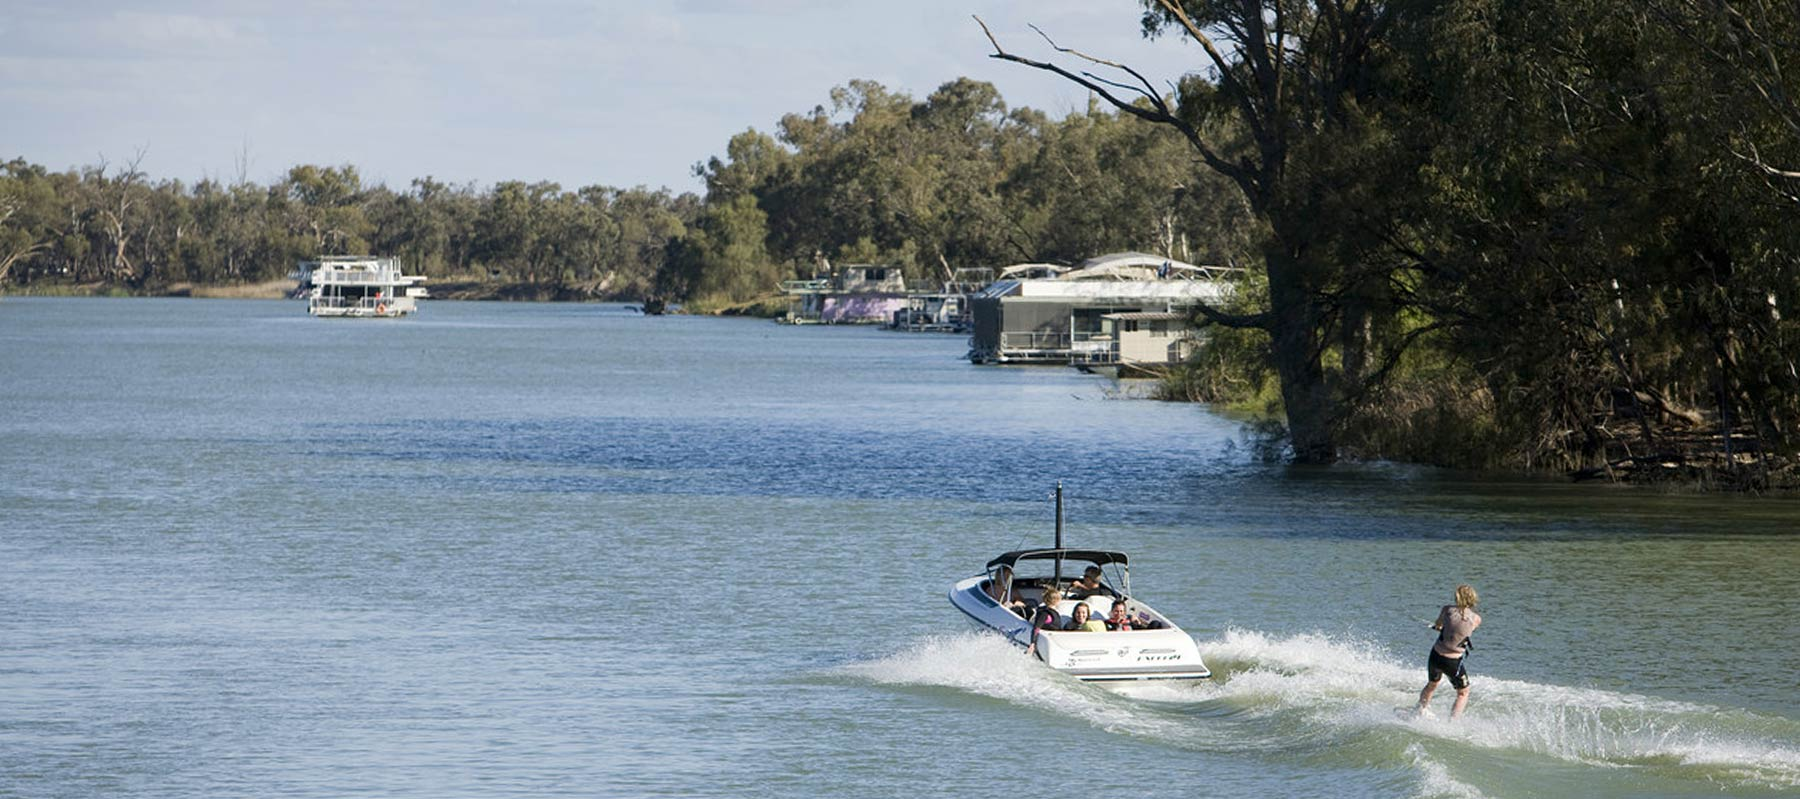 Waterskiing and wakeboarding in Echuca Moama